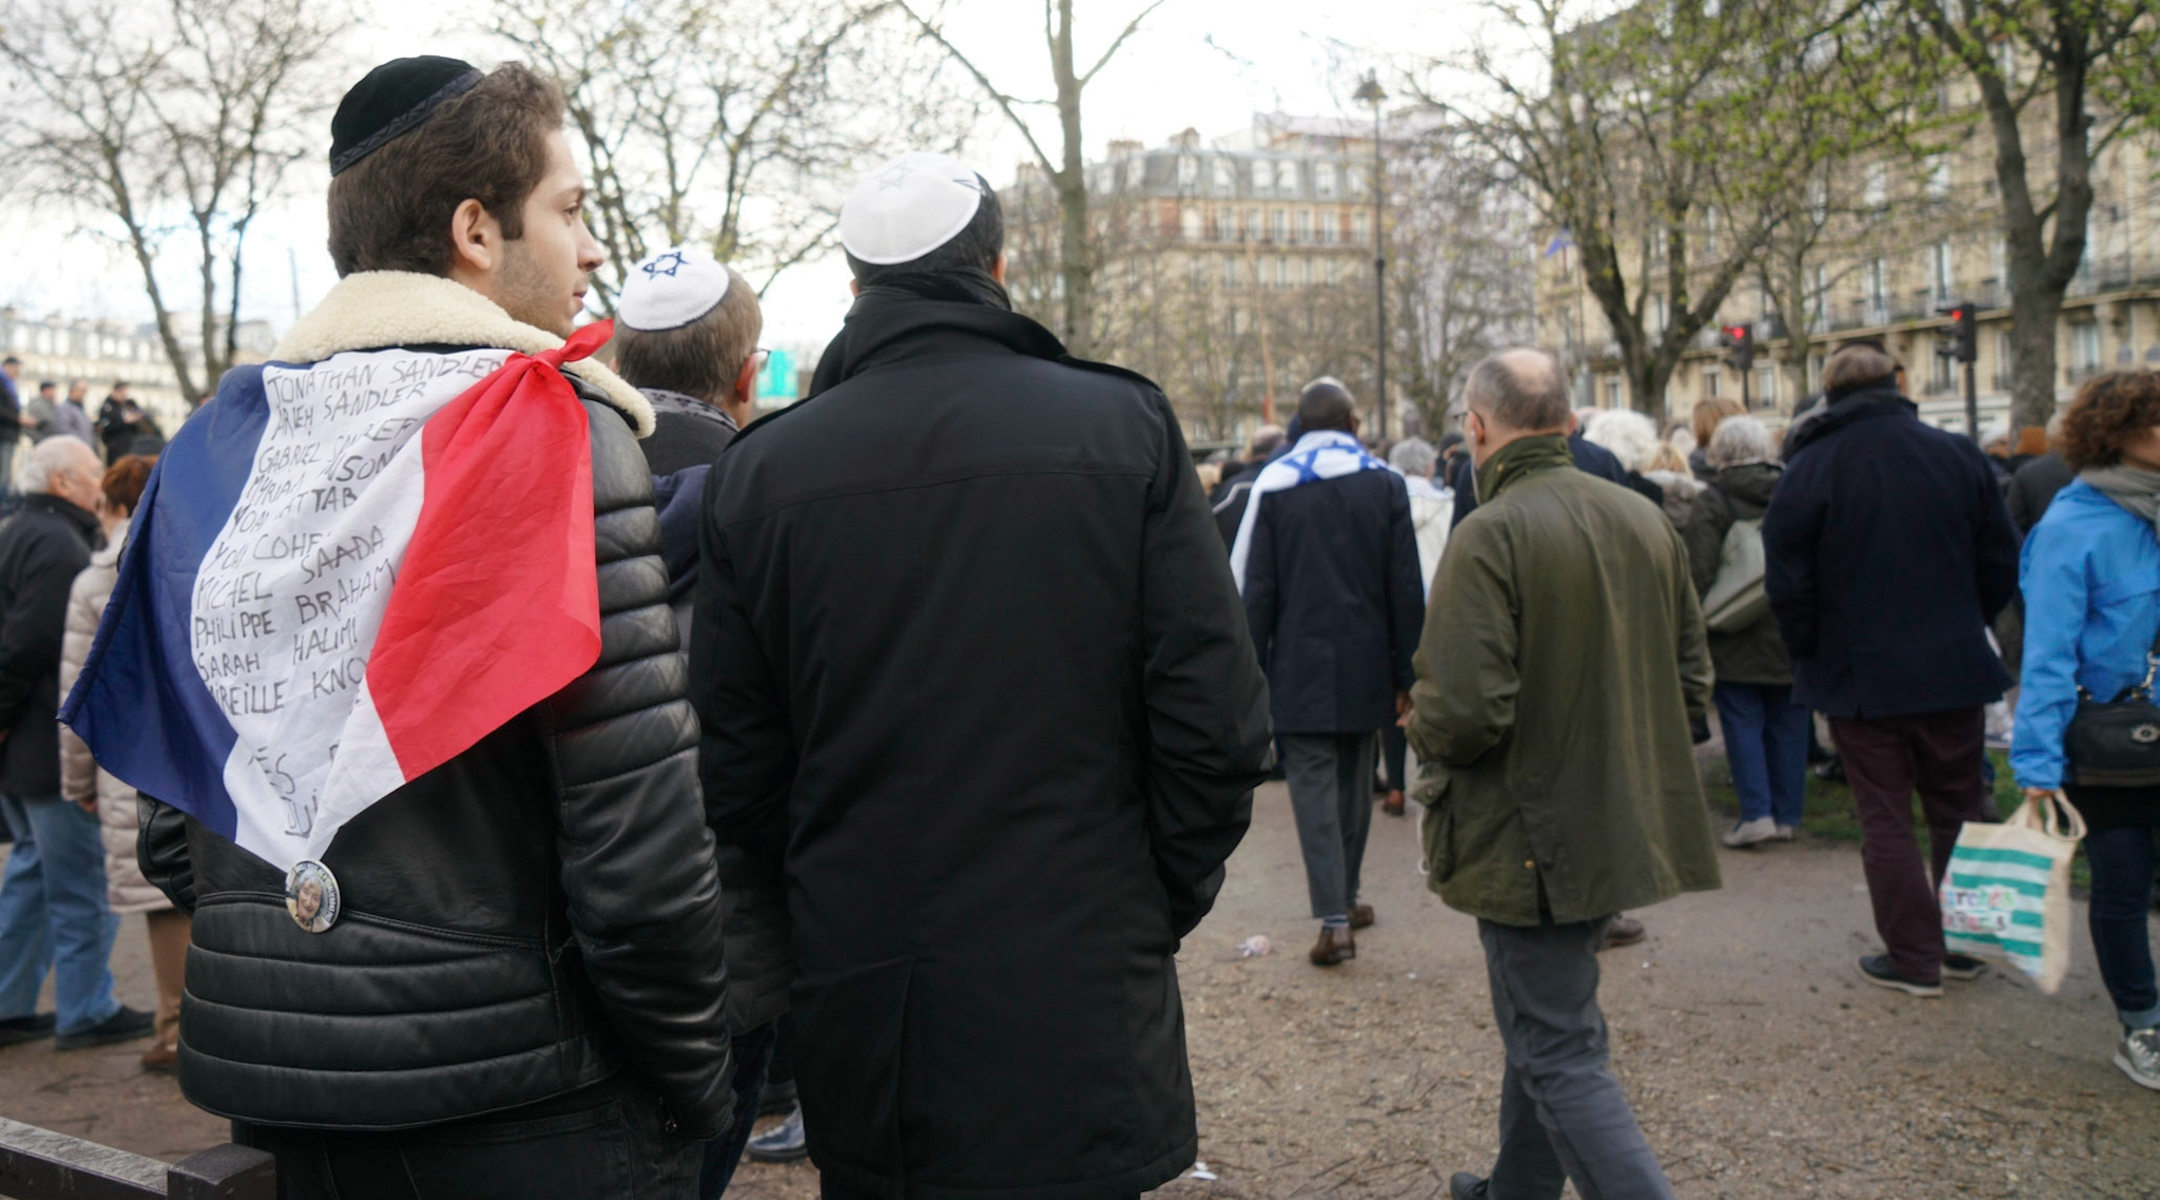 French Jews at a march protestic anti-Semitic violence in Paris, France on March 28, 2018. (Cnaan Liphshiz)